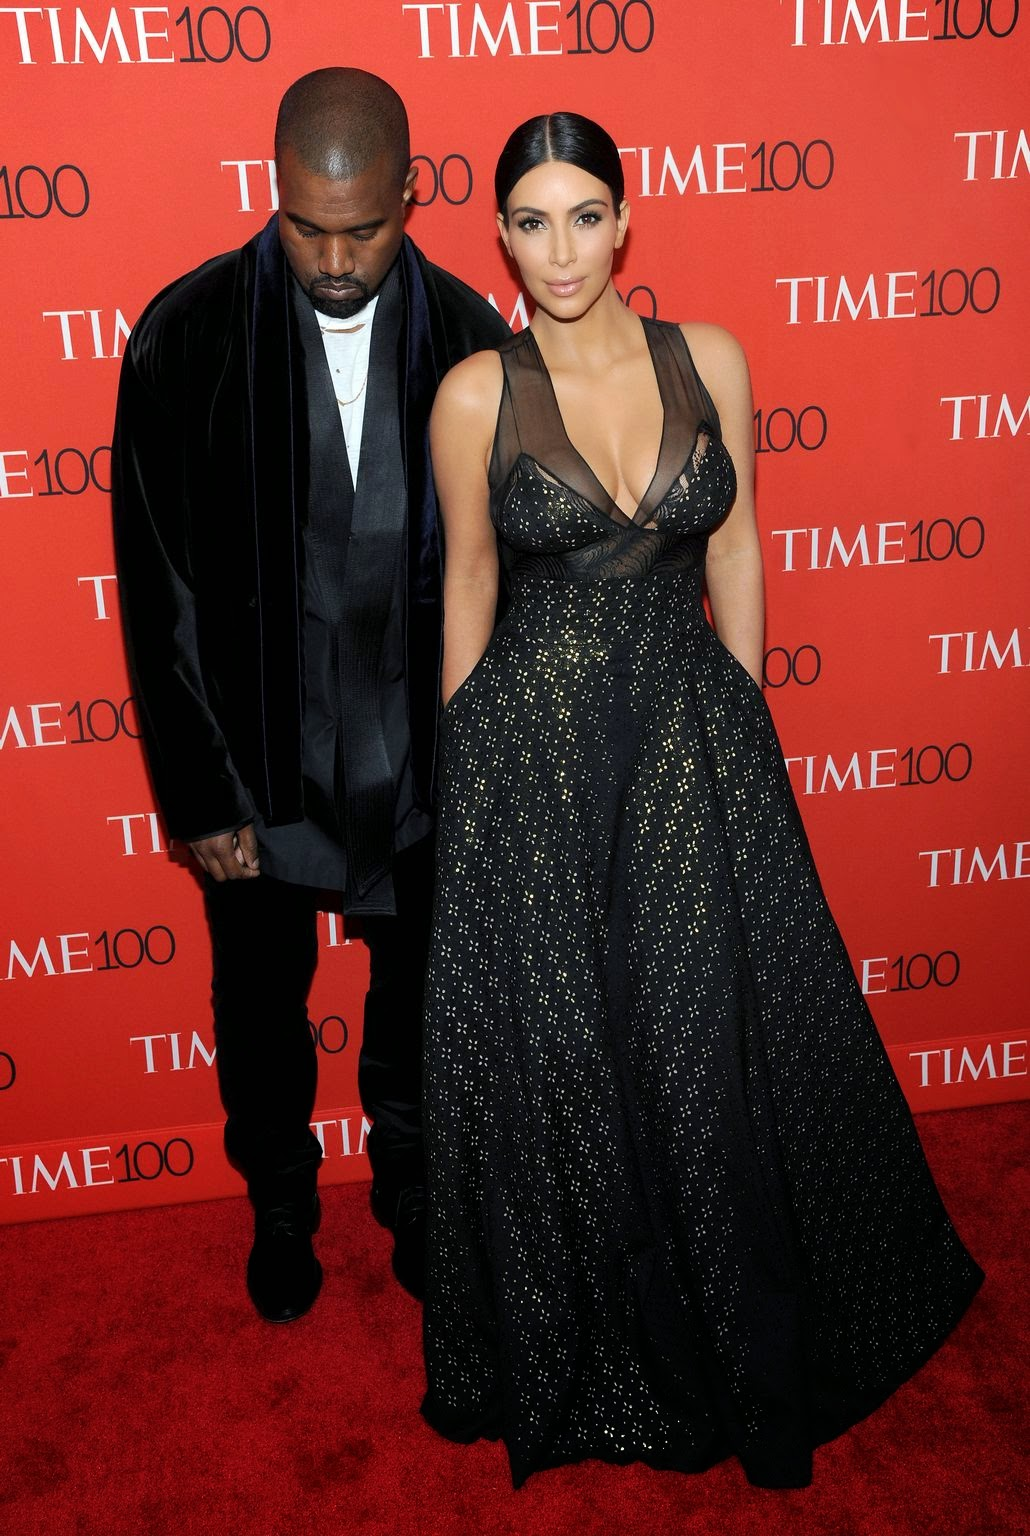 Kim Kardashian bares cleavage alongside Kanye West at the 2015 Time 100 Most Influential People in the World Gala